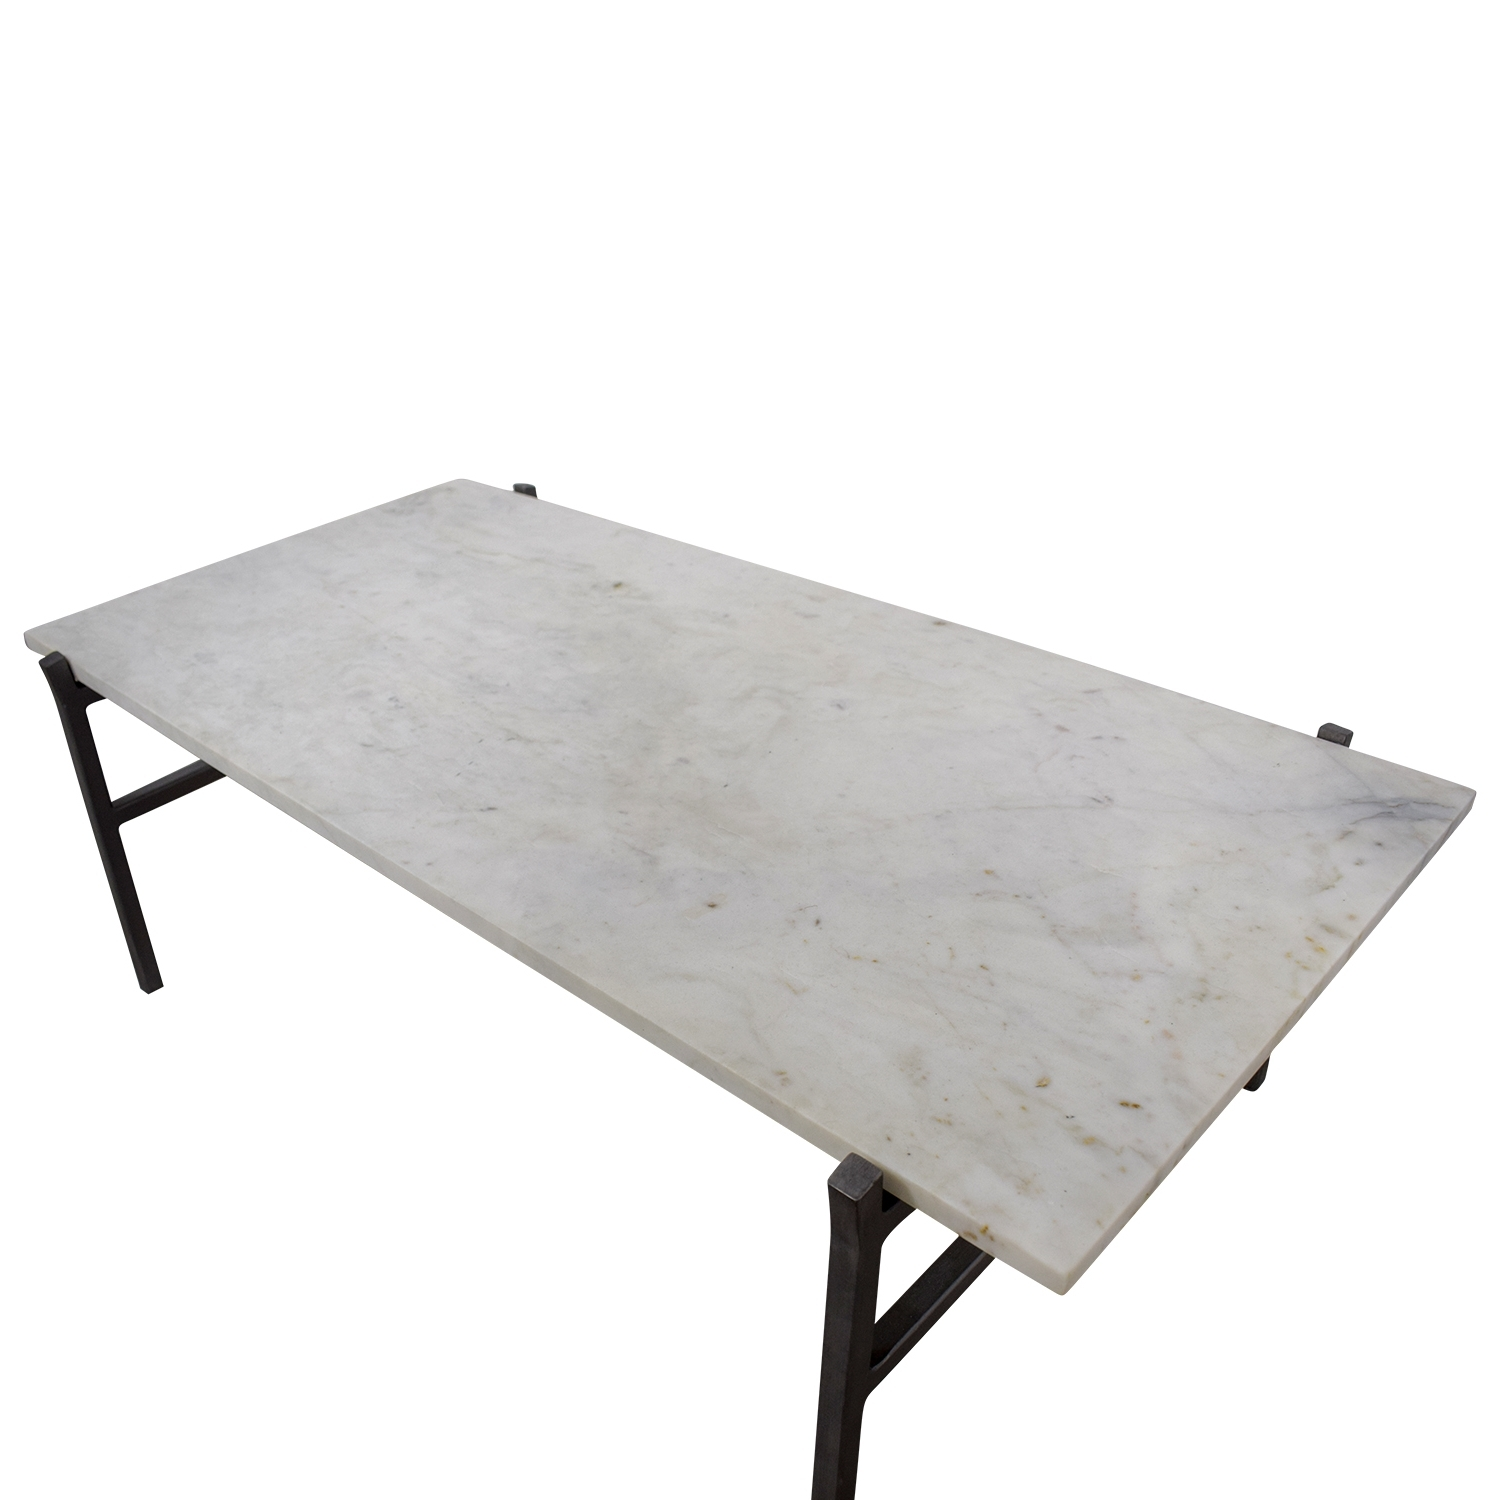 [%Most Popular Slab Small Marble Coffee Tables With Antiqued Silver Base For 24% Off – Cb2 Cb2 Slab Small Marble Coffee Table With Antiqued|24% Off – Cb2 Cb2 Slab Small Marble Coffee Table With Antiqued Regarding Current Slab Small Marble Coffee Tables With Antiqued Silver Base%] (View 5 of 20)